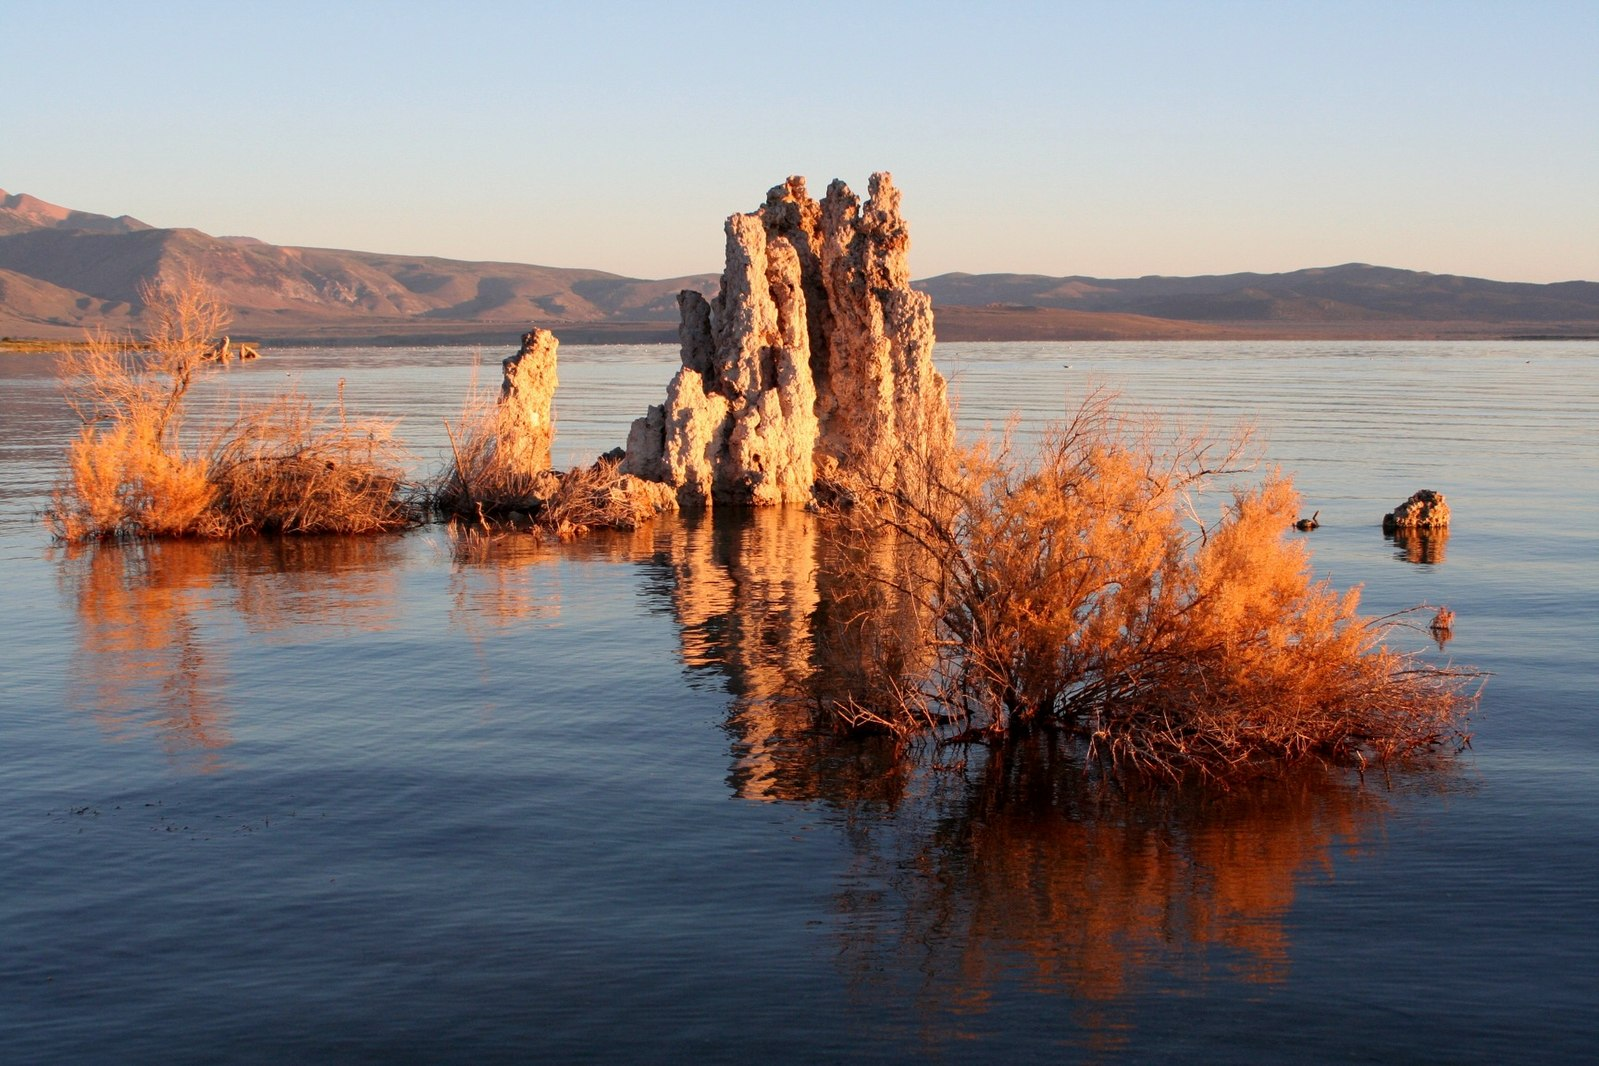 Tufa towers (calcium carbonate) in Mono Lake, California. Evaporation keeps the concentration of ions in the lake very high, allowing the calcium carbonate to precipitate. [Brocken Inaglory CC-BY-SA http://bit.ly/20JnS7A]